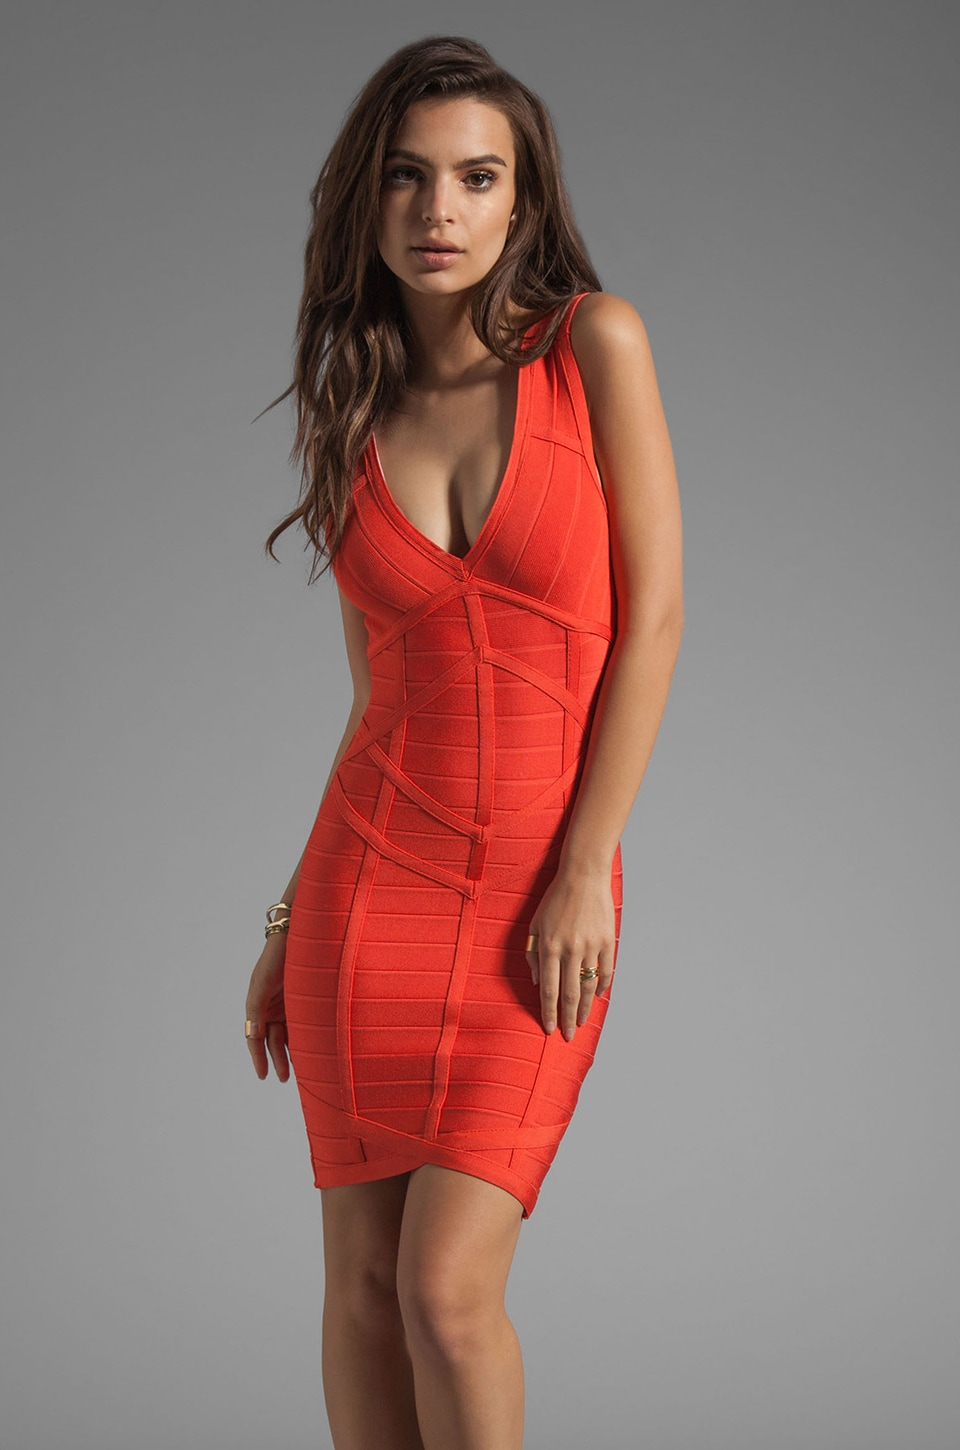 Stretta Rafaella Dress in Sunkist